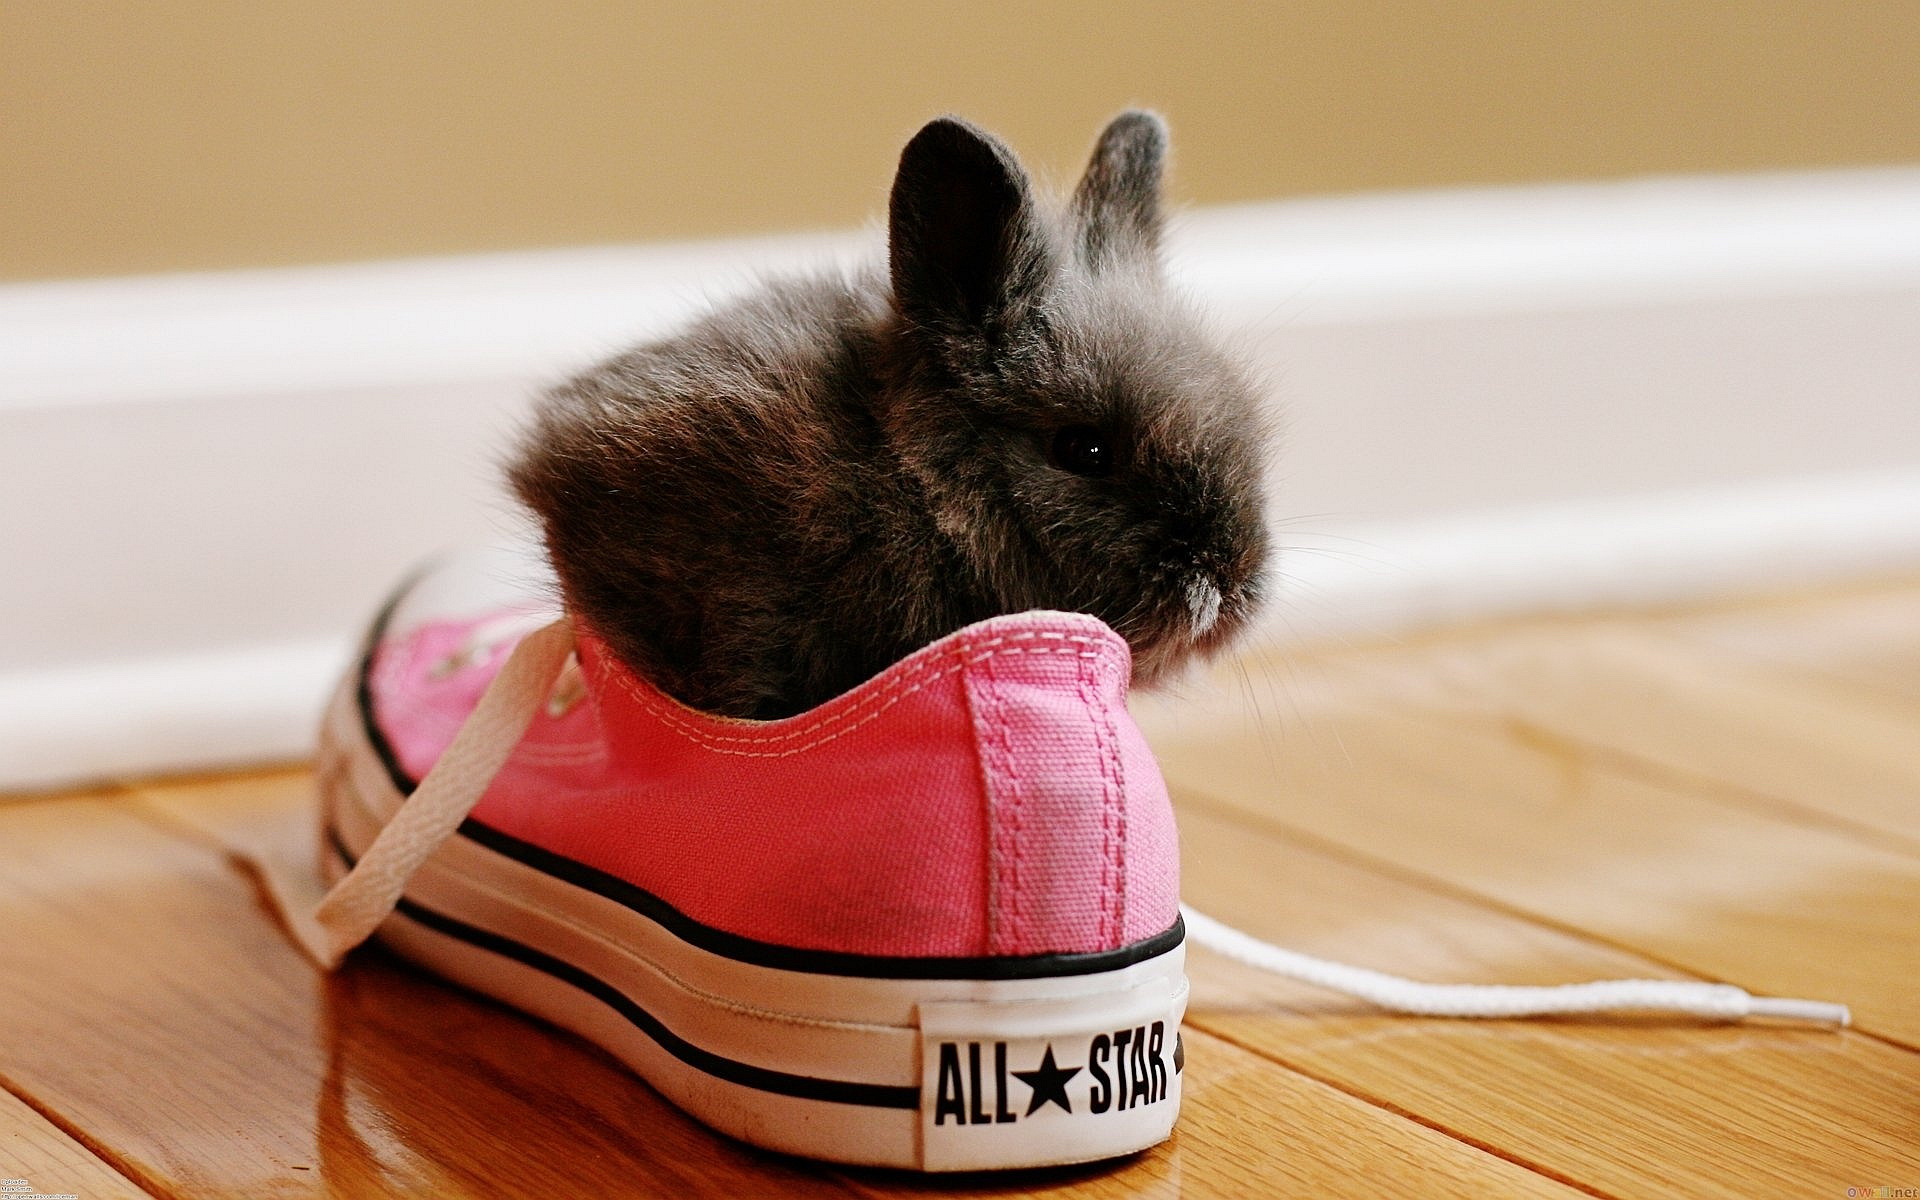 Rabbit in sneaker